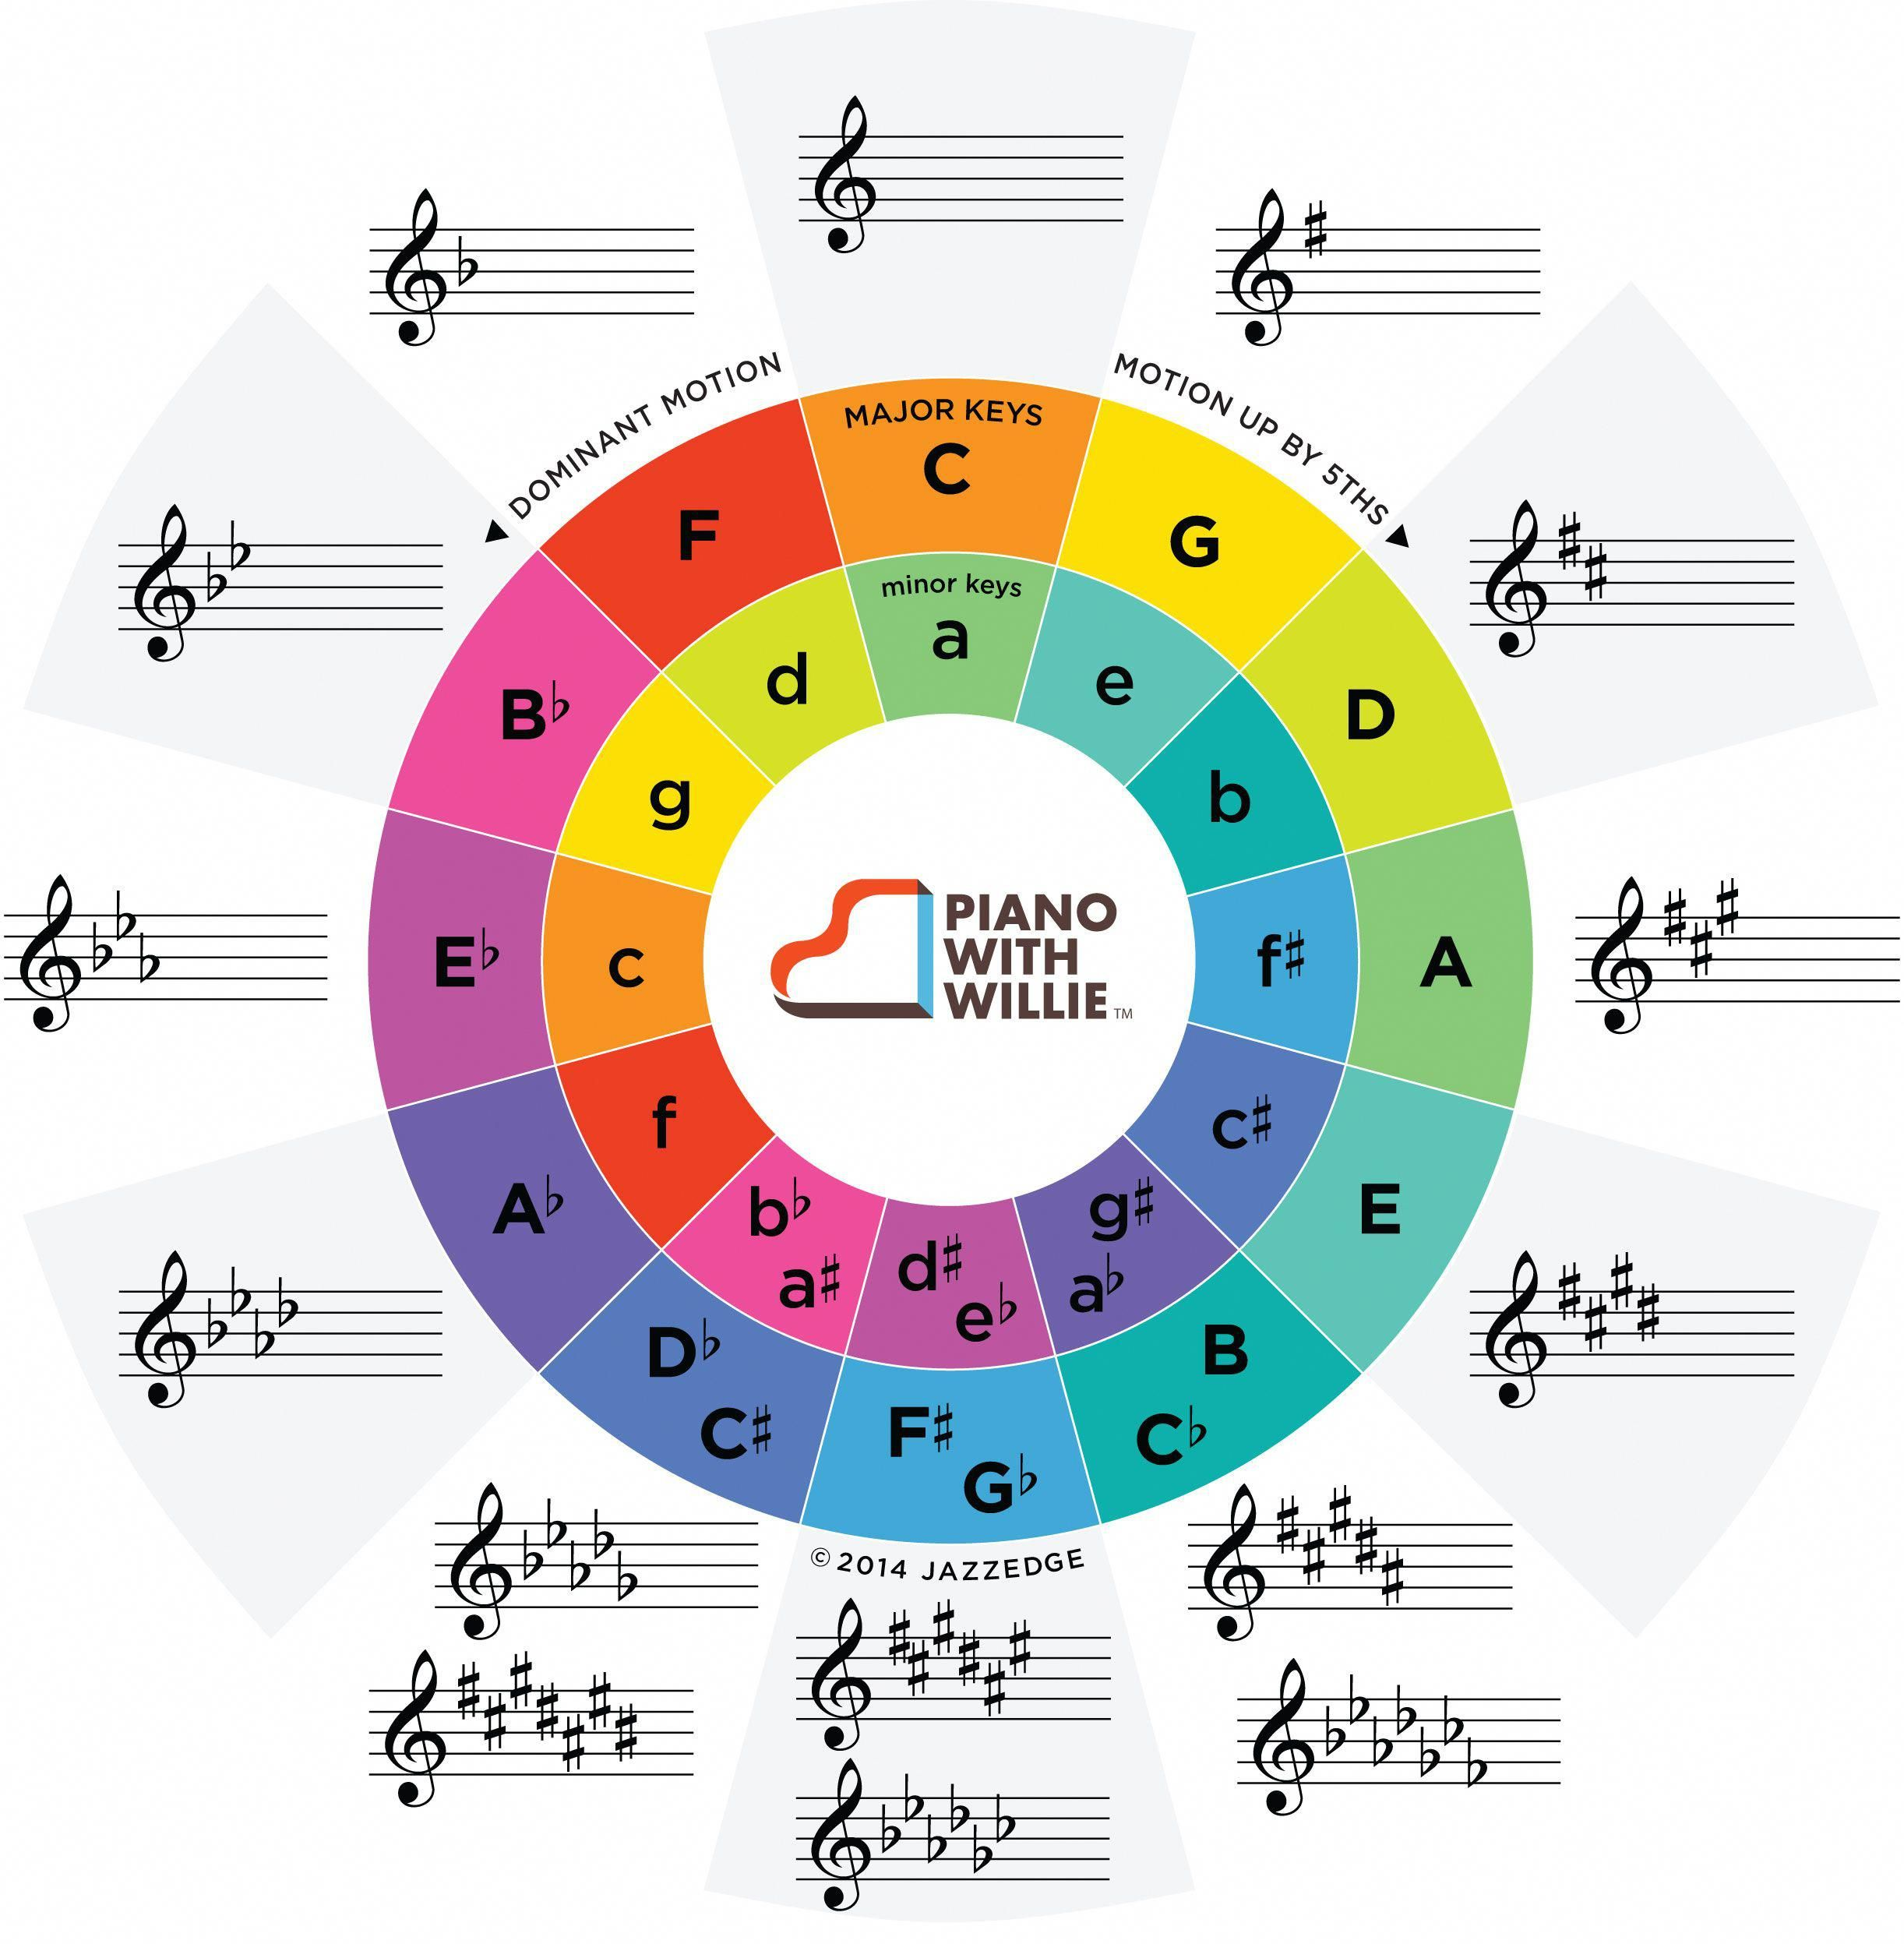 Cool Circle Of 5ths Chart In Color With Key Signatures